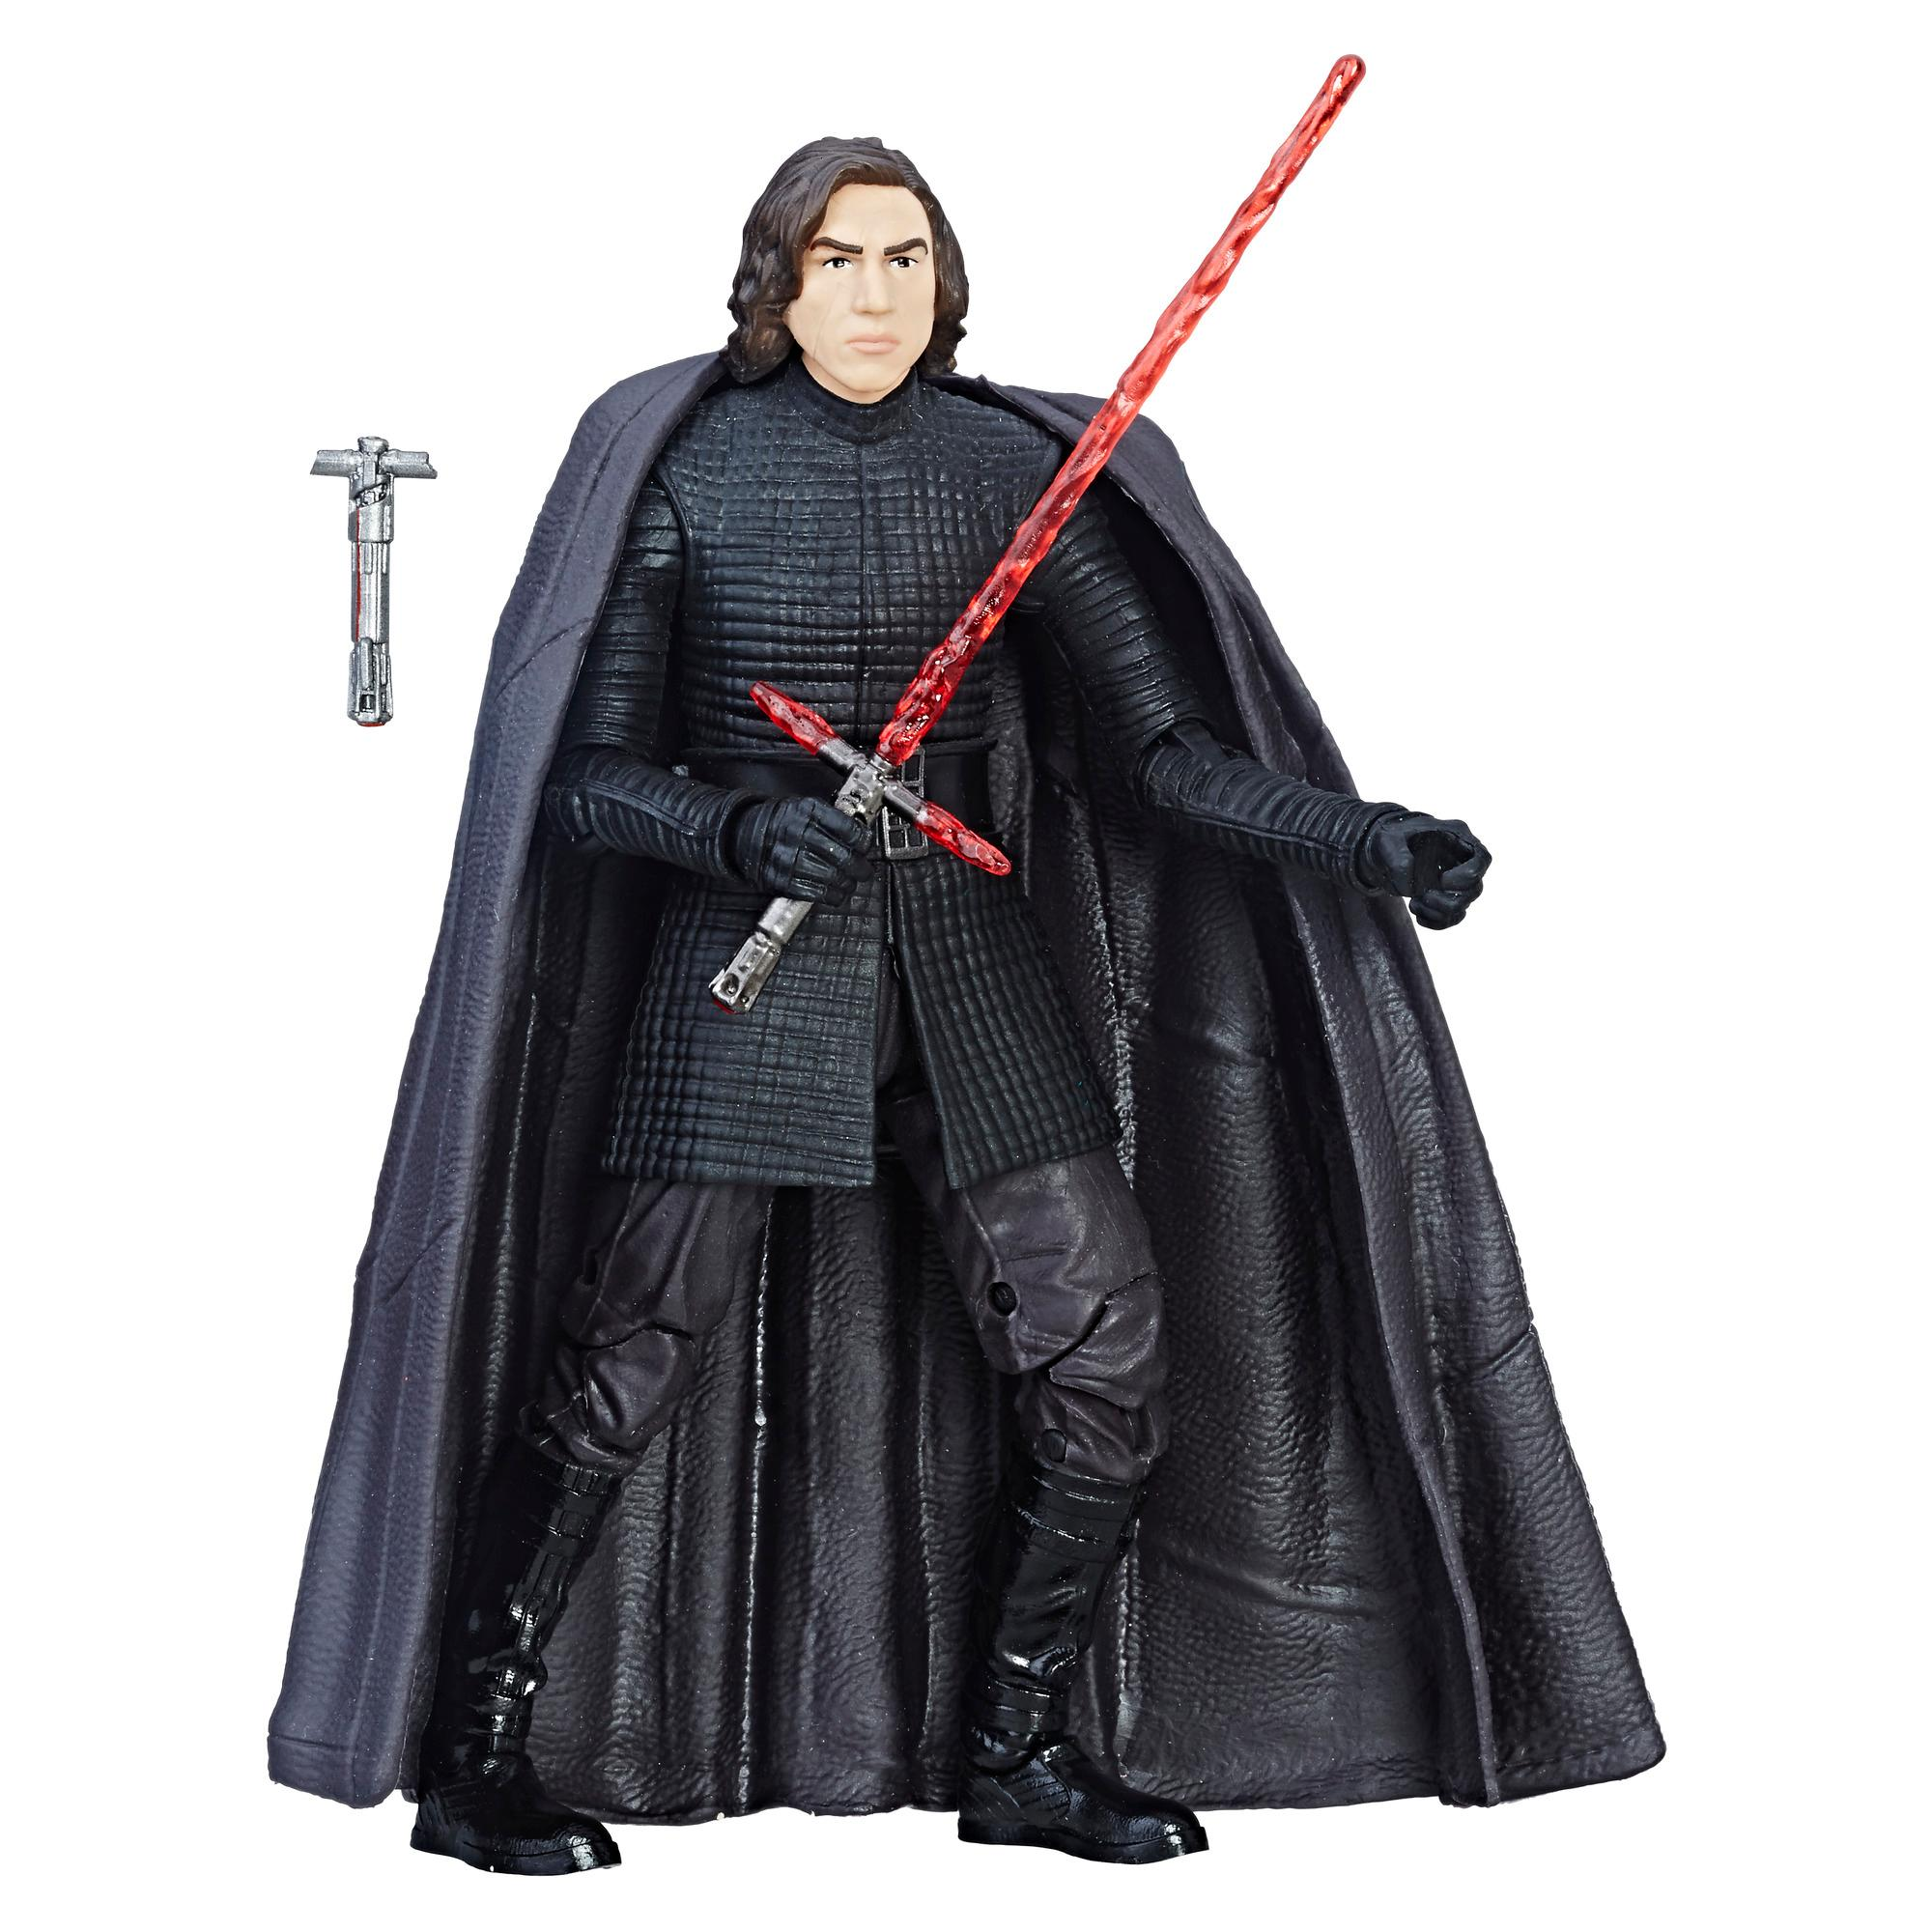 STAR WARS EPISODIO 8 BS KYLO REN (TIE PILOT)